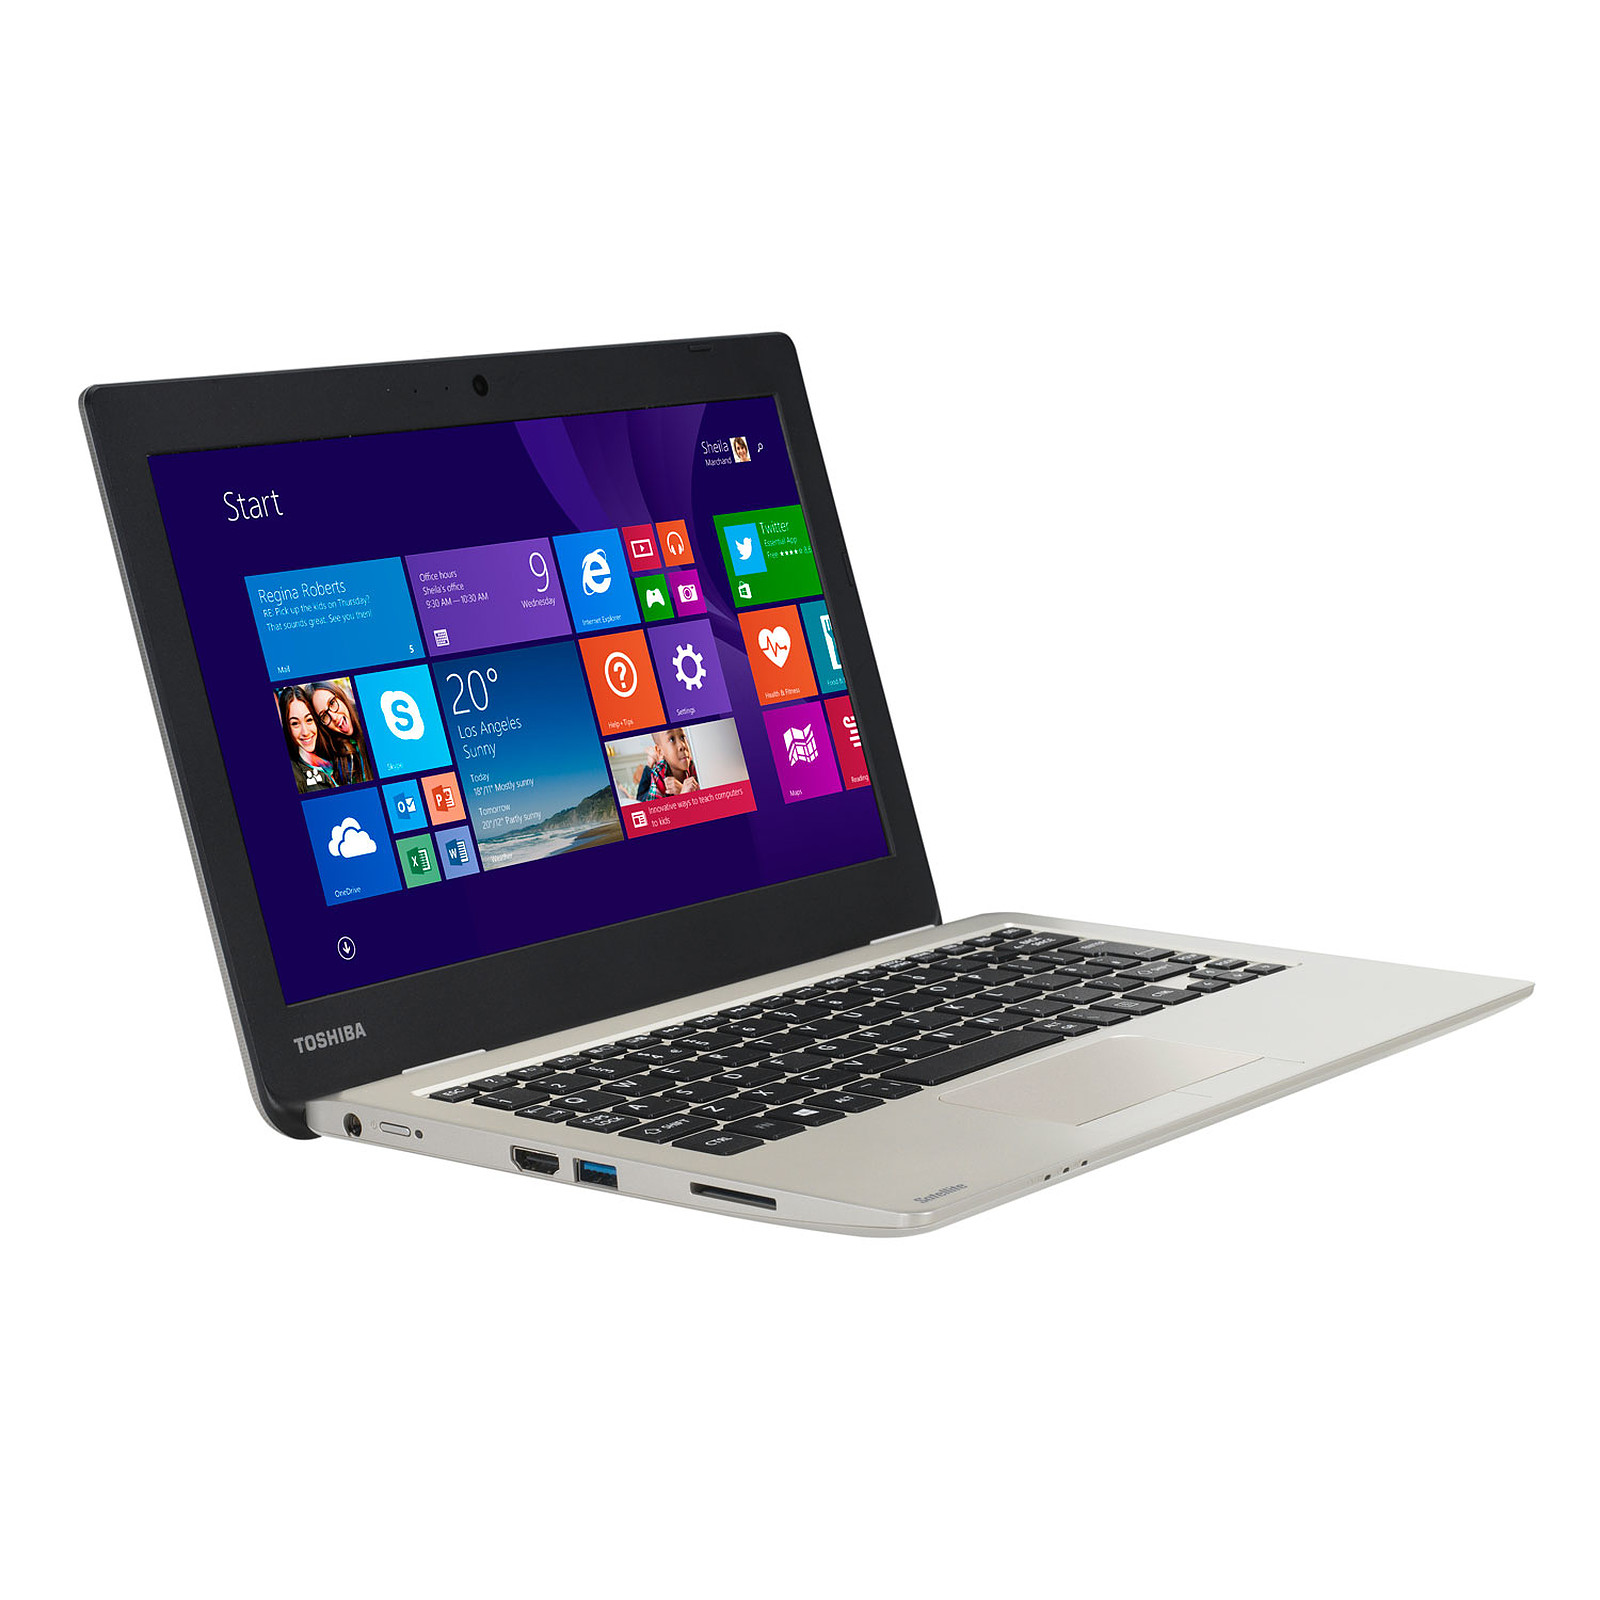 Toshiba Satellite CL10-B-103